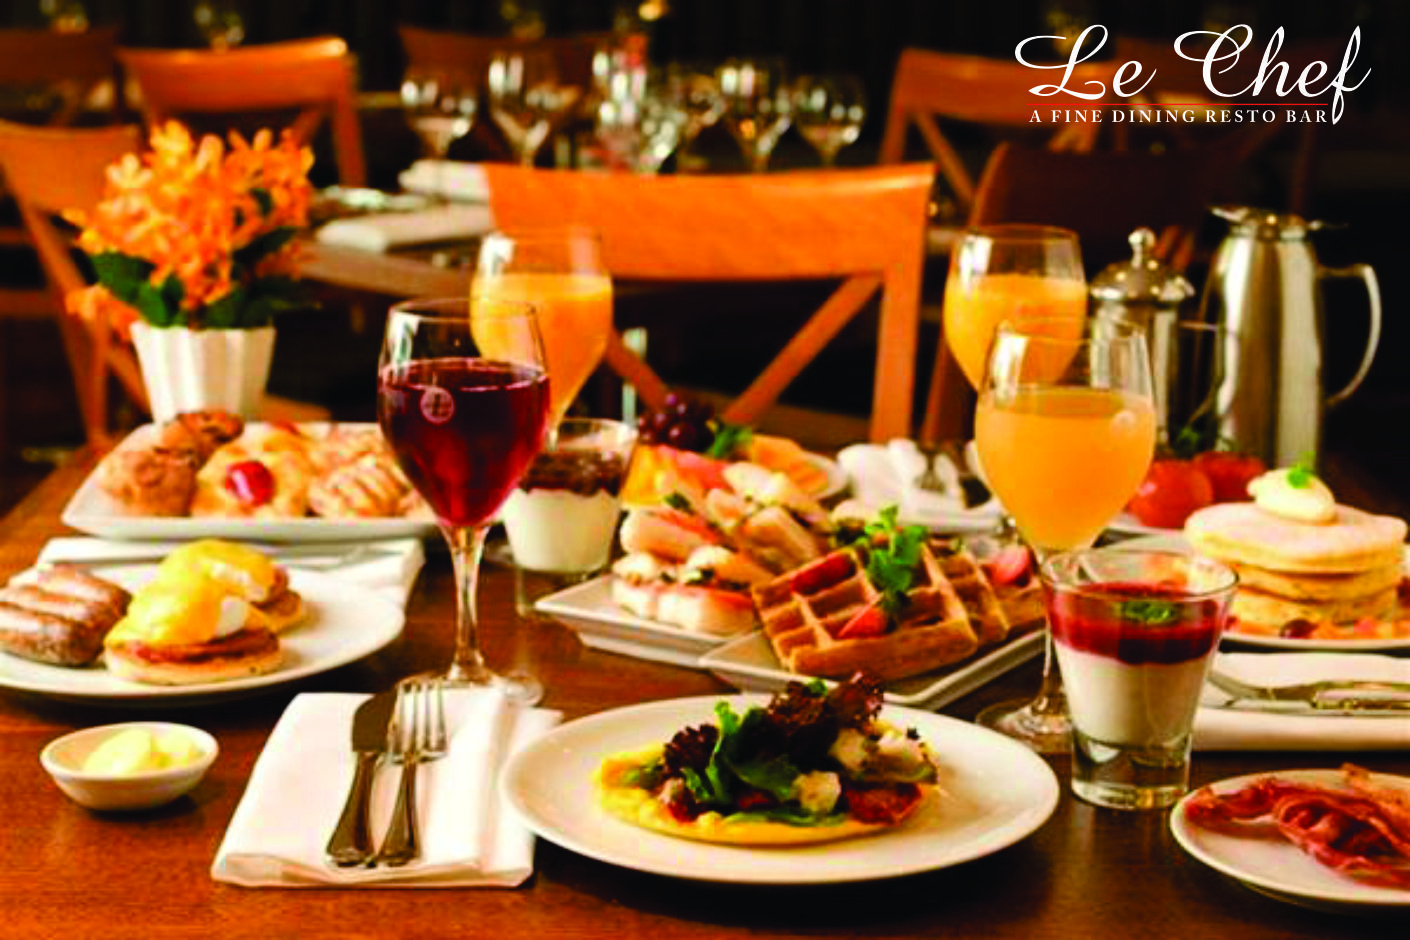 Explore the rich variety of food and enjoy fine dining